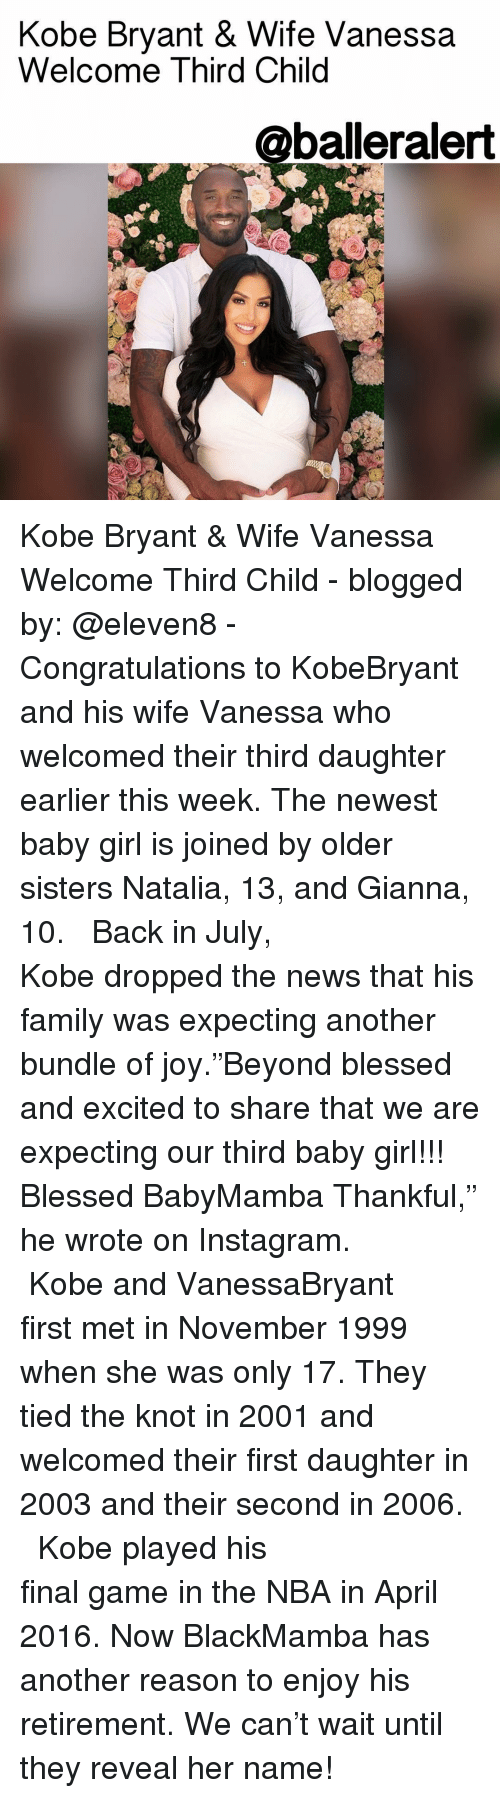 """the knot: Kobe Bryant & Wife Vanessa  Welcome Third Child  @balleralert Kobe Bryant & Wife Vanessa Welcome Third Child - blogged by: @eleven8 - ⠀⠀⠀⠀⠀⠀⠀⠀⠀ ⠀⠀⠀⠀⠀⠀⠀⠀⠀ Congratulations to KobeBryant and his wife Vanessa who welcomed their third daughter earlier this week. The newest baby girl is joined by older sisters Natalia, 13, and Gianna, 10. ⠀⠀⠀⠀⠀⠀⠀⠀⠀ ⠀⠀⠀⠀⠀⠀⠀⠀⠀ Back in July, Kobe dropped the news that his family was expecting another bundle of joy.""""Beyond blessed and excited to share that we are expecting our third baby girl!!! Blessed BabyMamba Thankful,"""" he wrote on Instagram. ⠀⠀⠀⠀⠀⠀⠀⠀⠀ ⠀⠀⠀⠀⠀⠀⠀⠀⠀ Kobe and VanessaBryant first met in November 1999 when she was only 17. They tied the knot in 2001 and welcomed their first daughter in 2003 and their second in 2006. ⠀⠀⠀⠀⠀⠀⠀⠀⠀ ⠀⠀⠀⠀⠀⠀⠀⠀⠀ Kobe played his final game in the NBA in April 2016. Now BlackMamba has another reason to enjoy his retirement. We can't wait until they reveal her name!"""